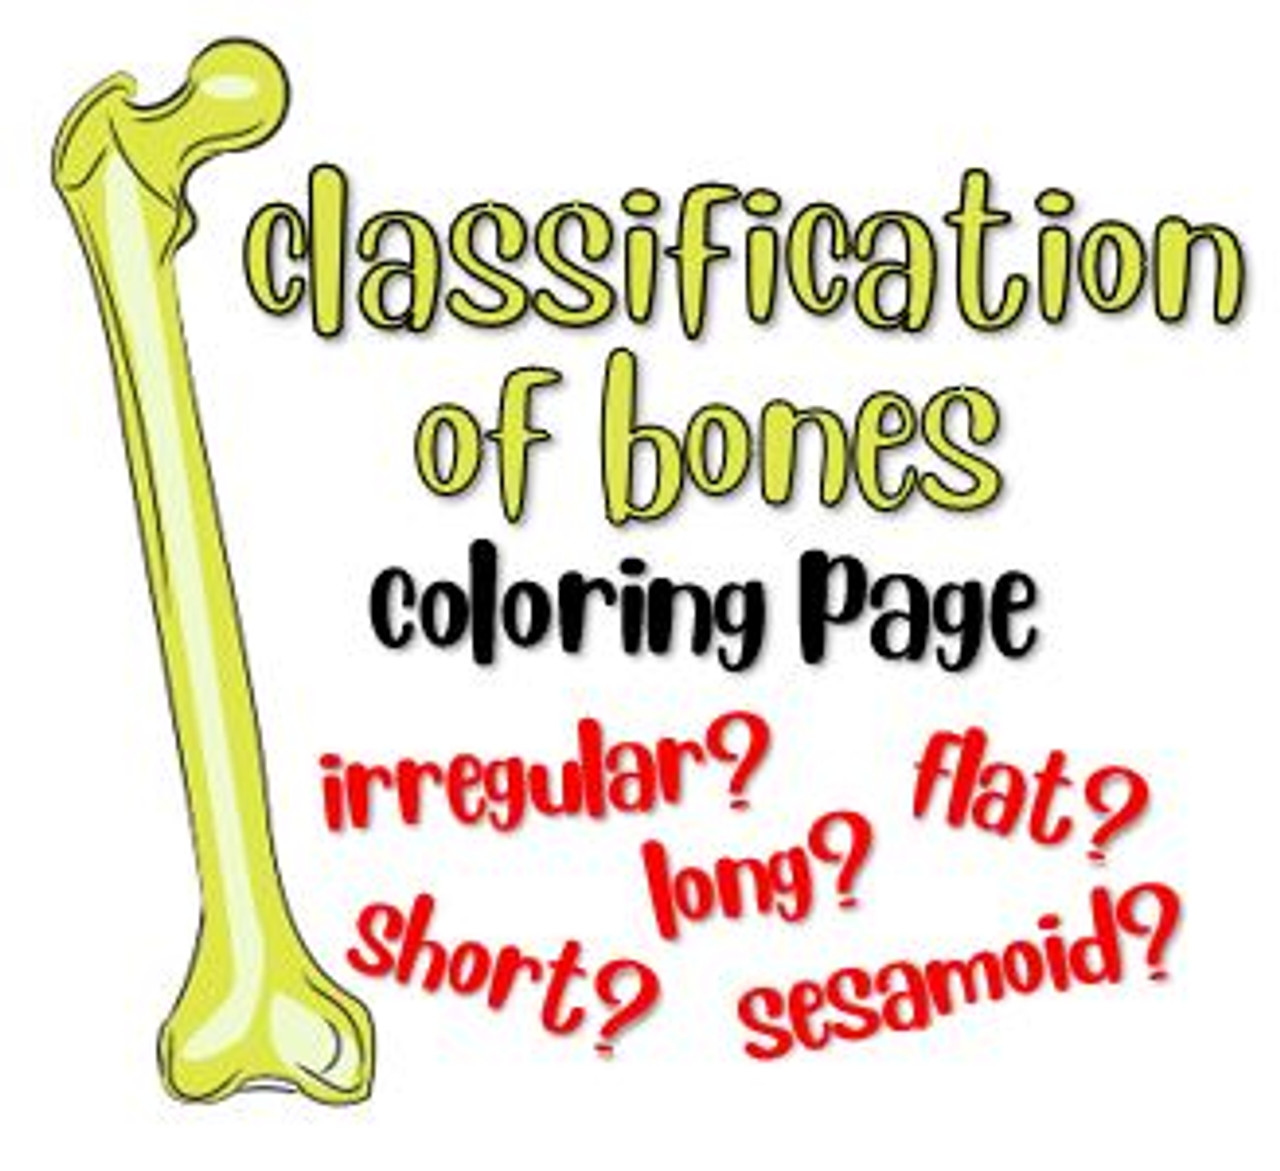 Classification of Bones Coloring Page - Amped Up Learning [ 1171 x 1280 Pixel ]